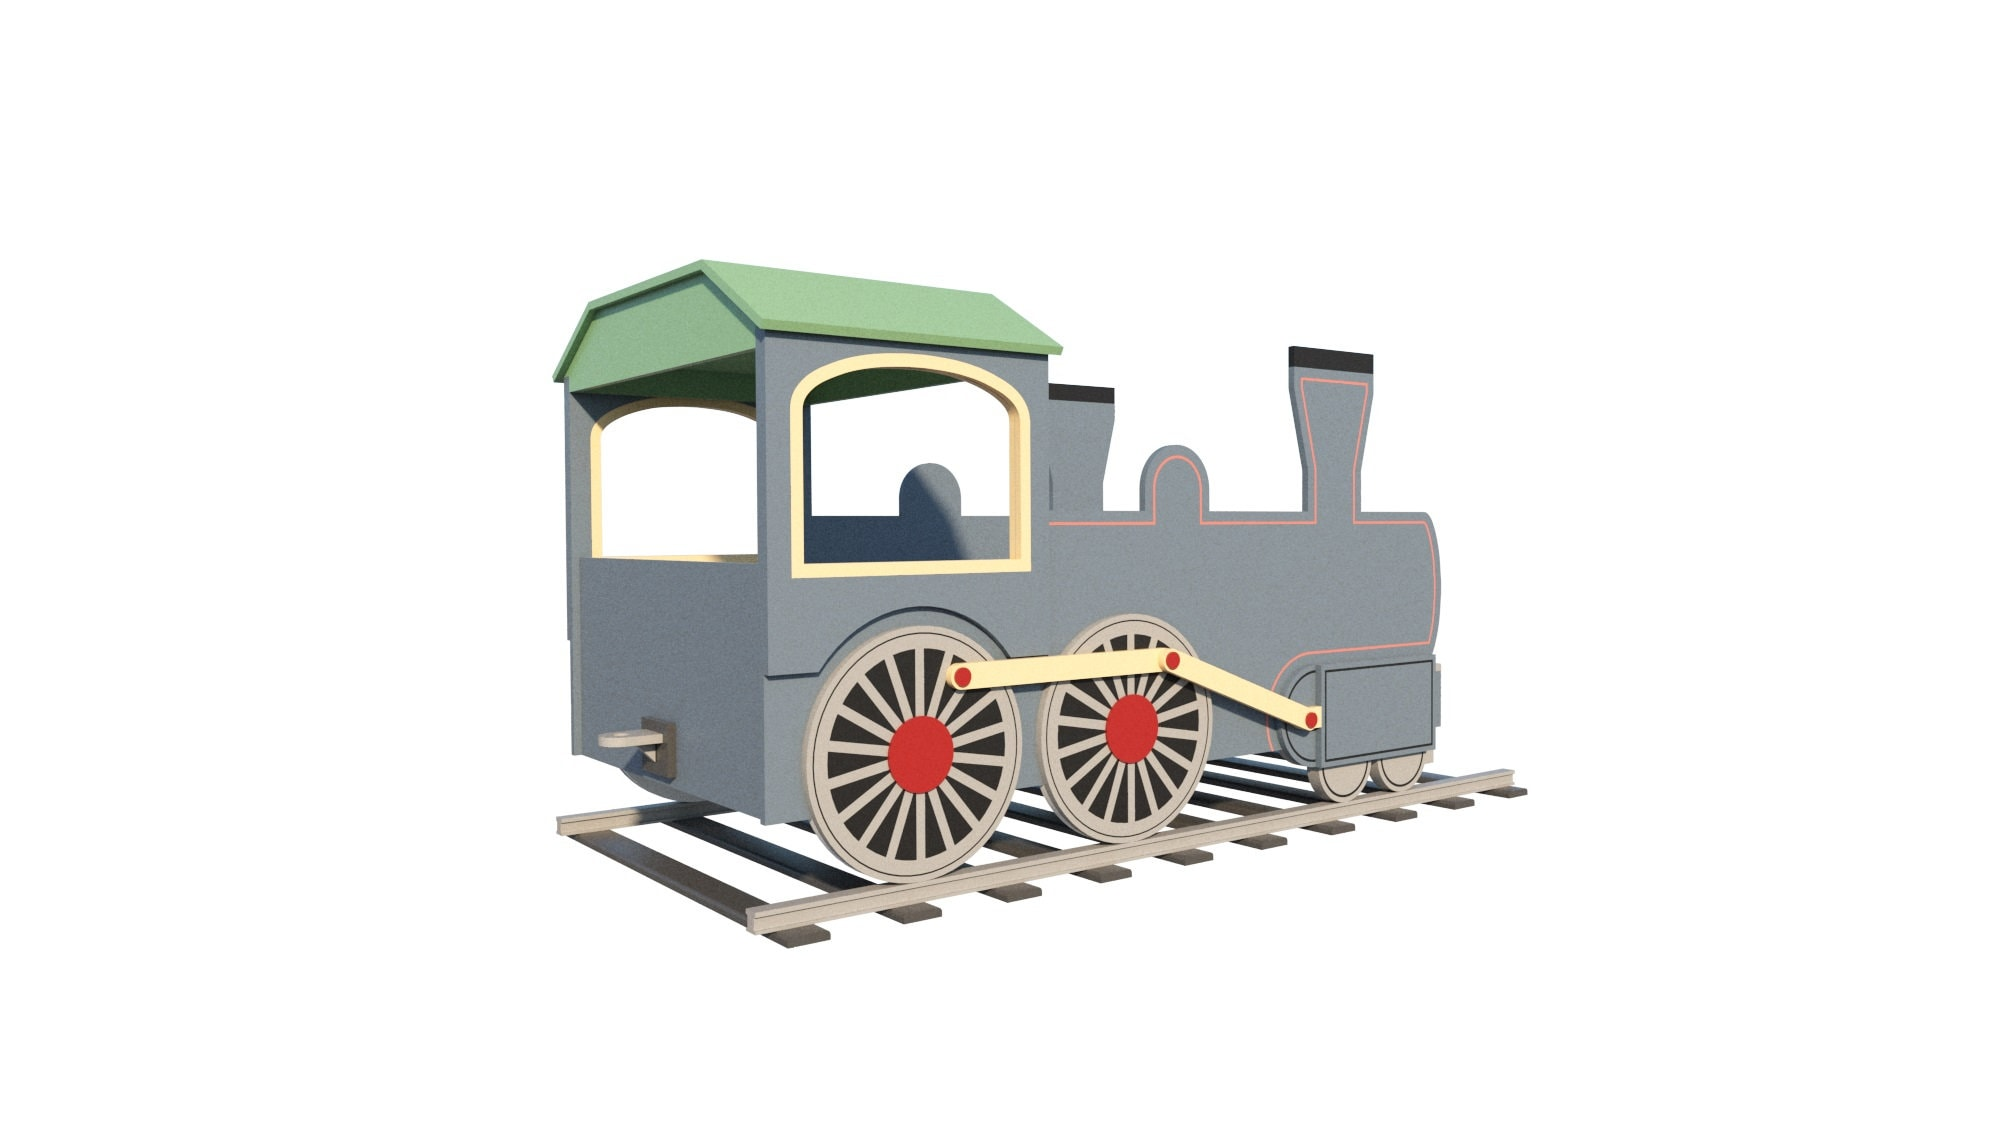 Train Engine Bed Woodworking Plan For Child DIY Kids Bedroom Furniture on train car house plans, railroad car home, passenger car house plans, freight car house plans,